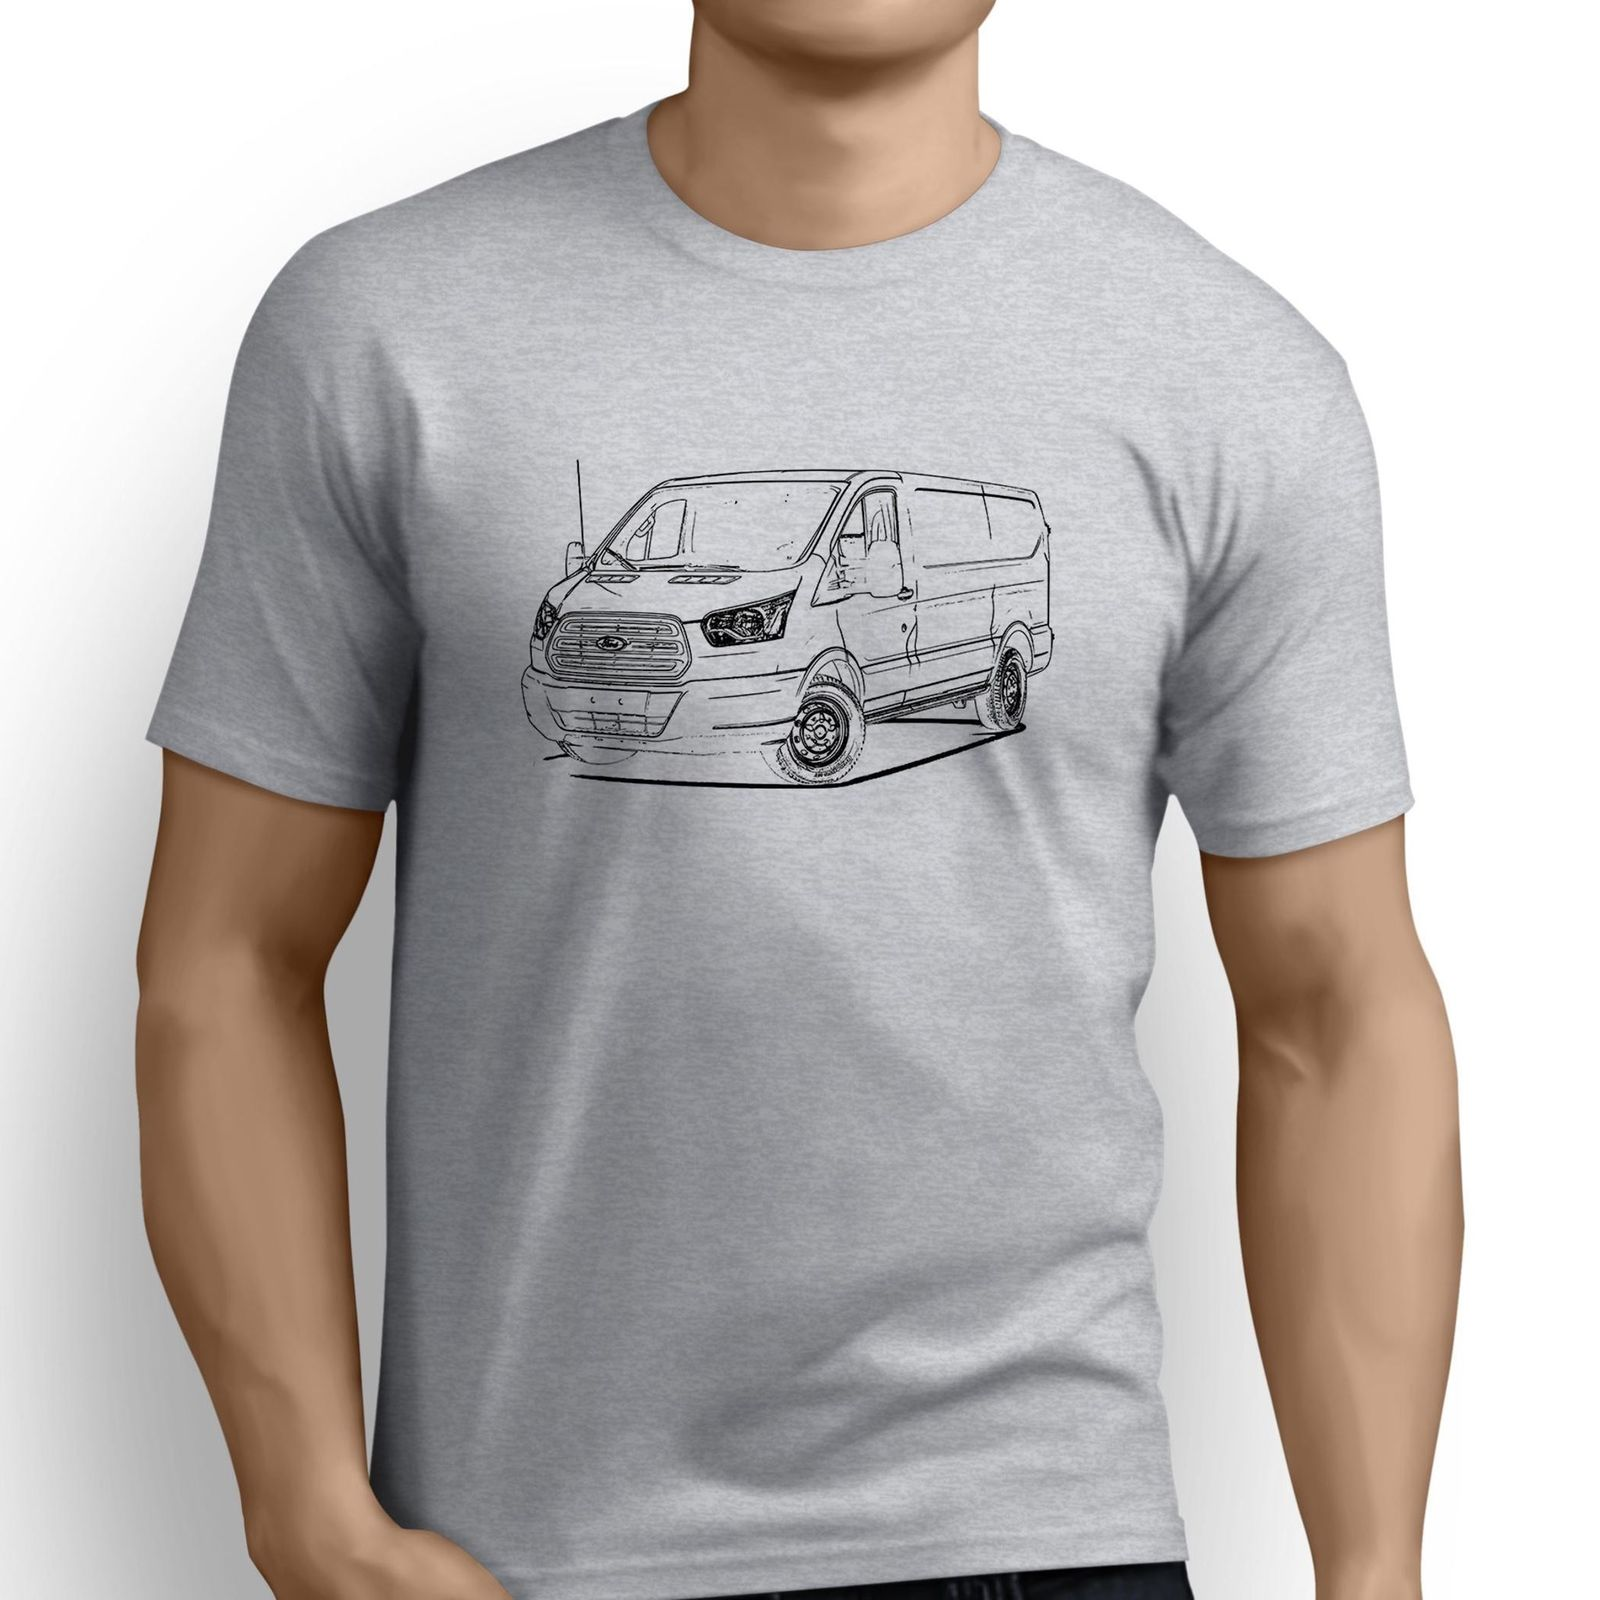 Newest 2018 Fashion Sleeves Cotton T-Shirt Fashion American Car Fans Transit Van Inspired Car Offensive T Shirts